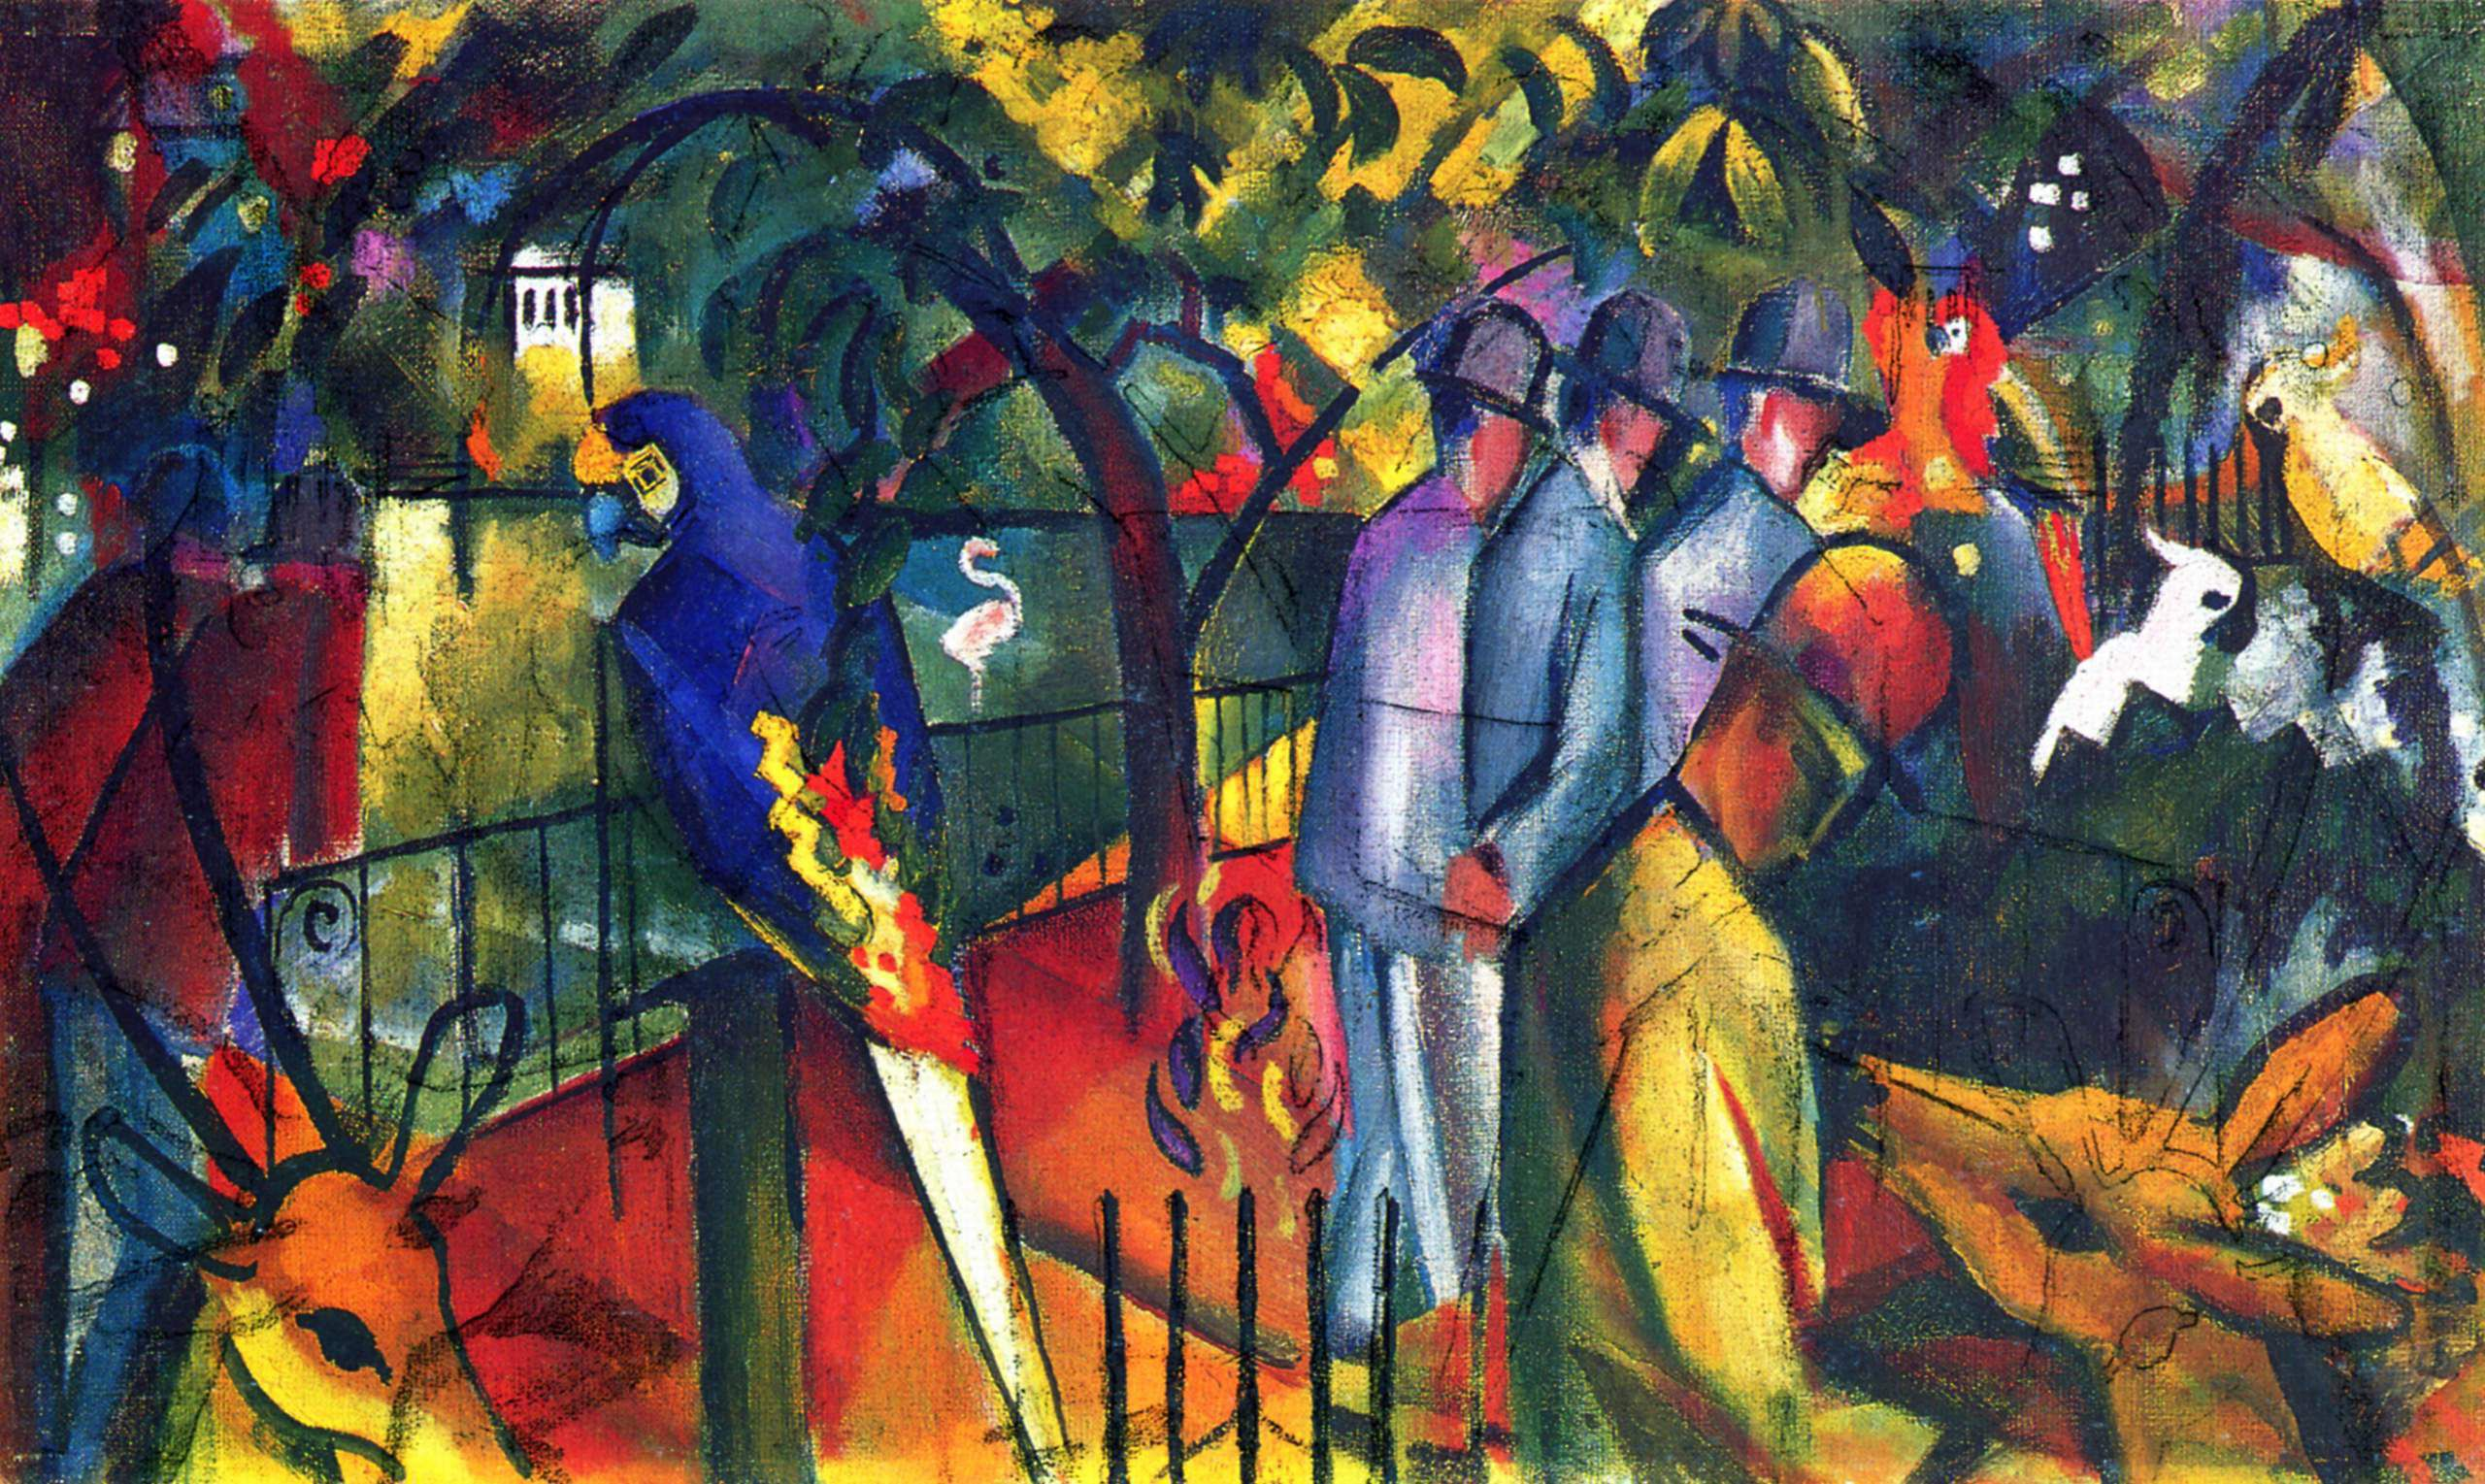 August Macke Background